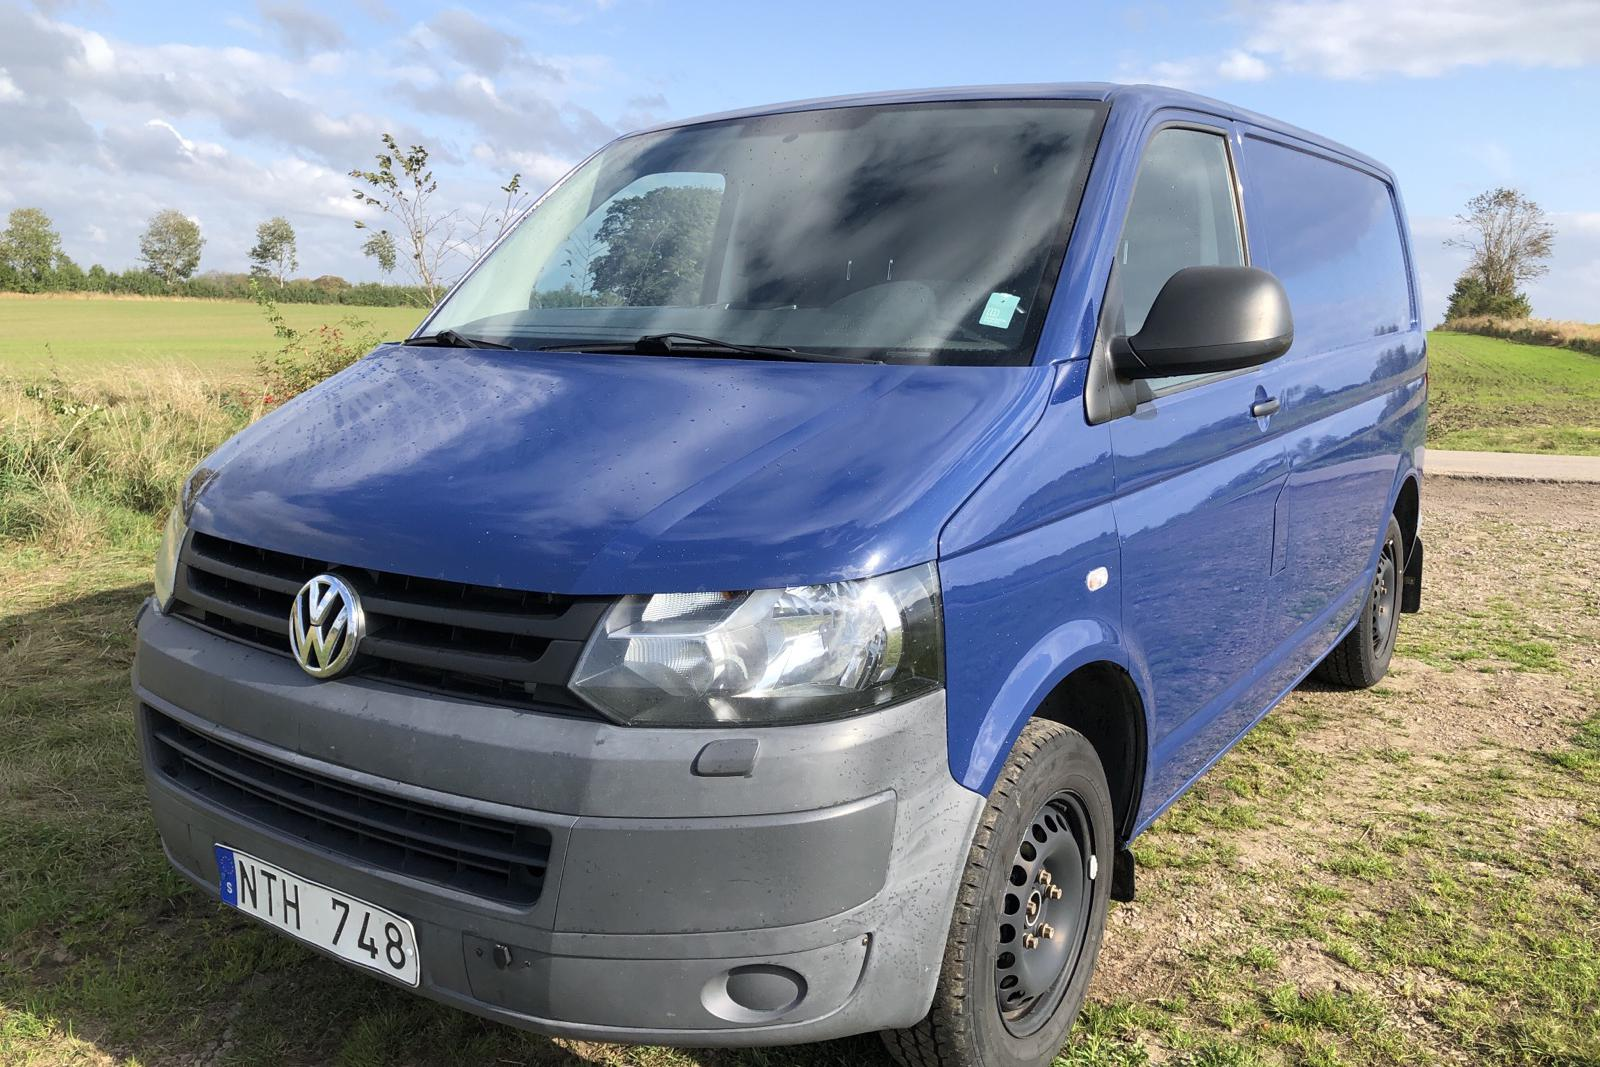 VW Transporter T5 2.0 TDI 4MOTION (140hk) - 0 mil - Manuell - Dark Blue - 2011